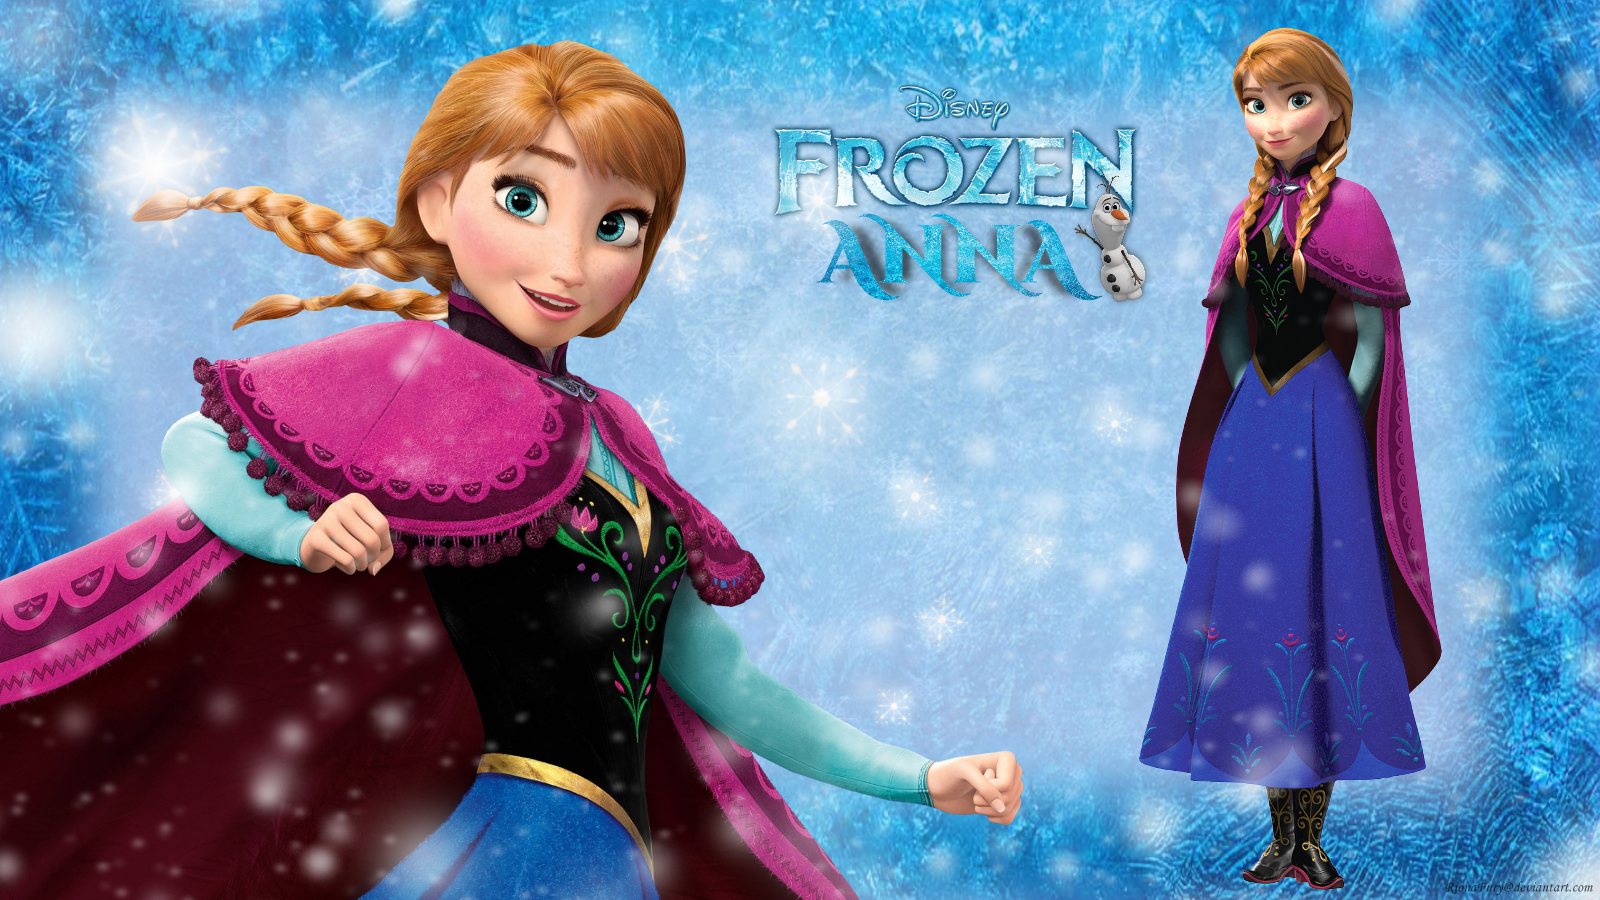 Frozens Anna Images Frozen Anna HD Wallpaper And